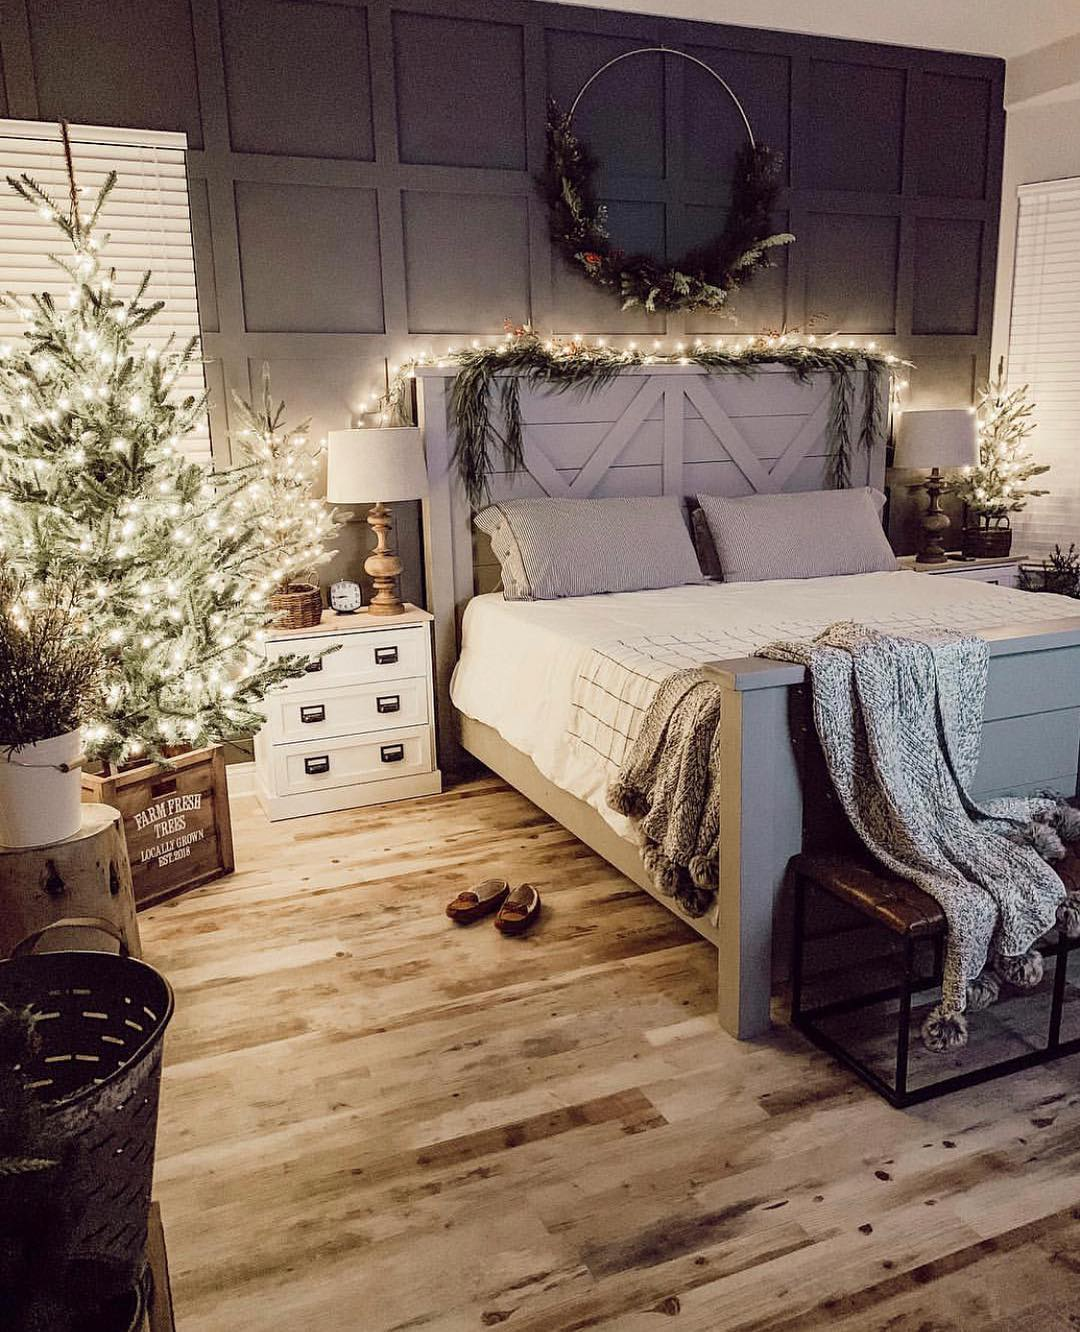 43-small-and-cute-bedroom-designs-and-ideas-for-this-year